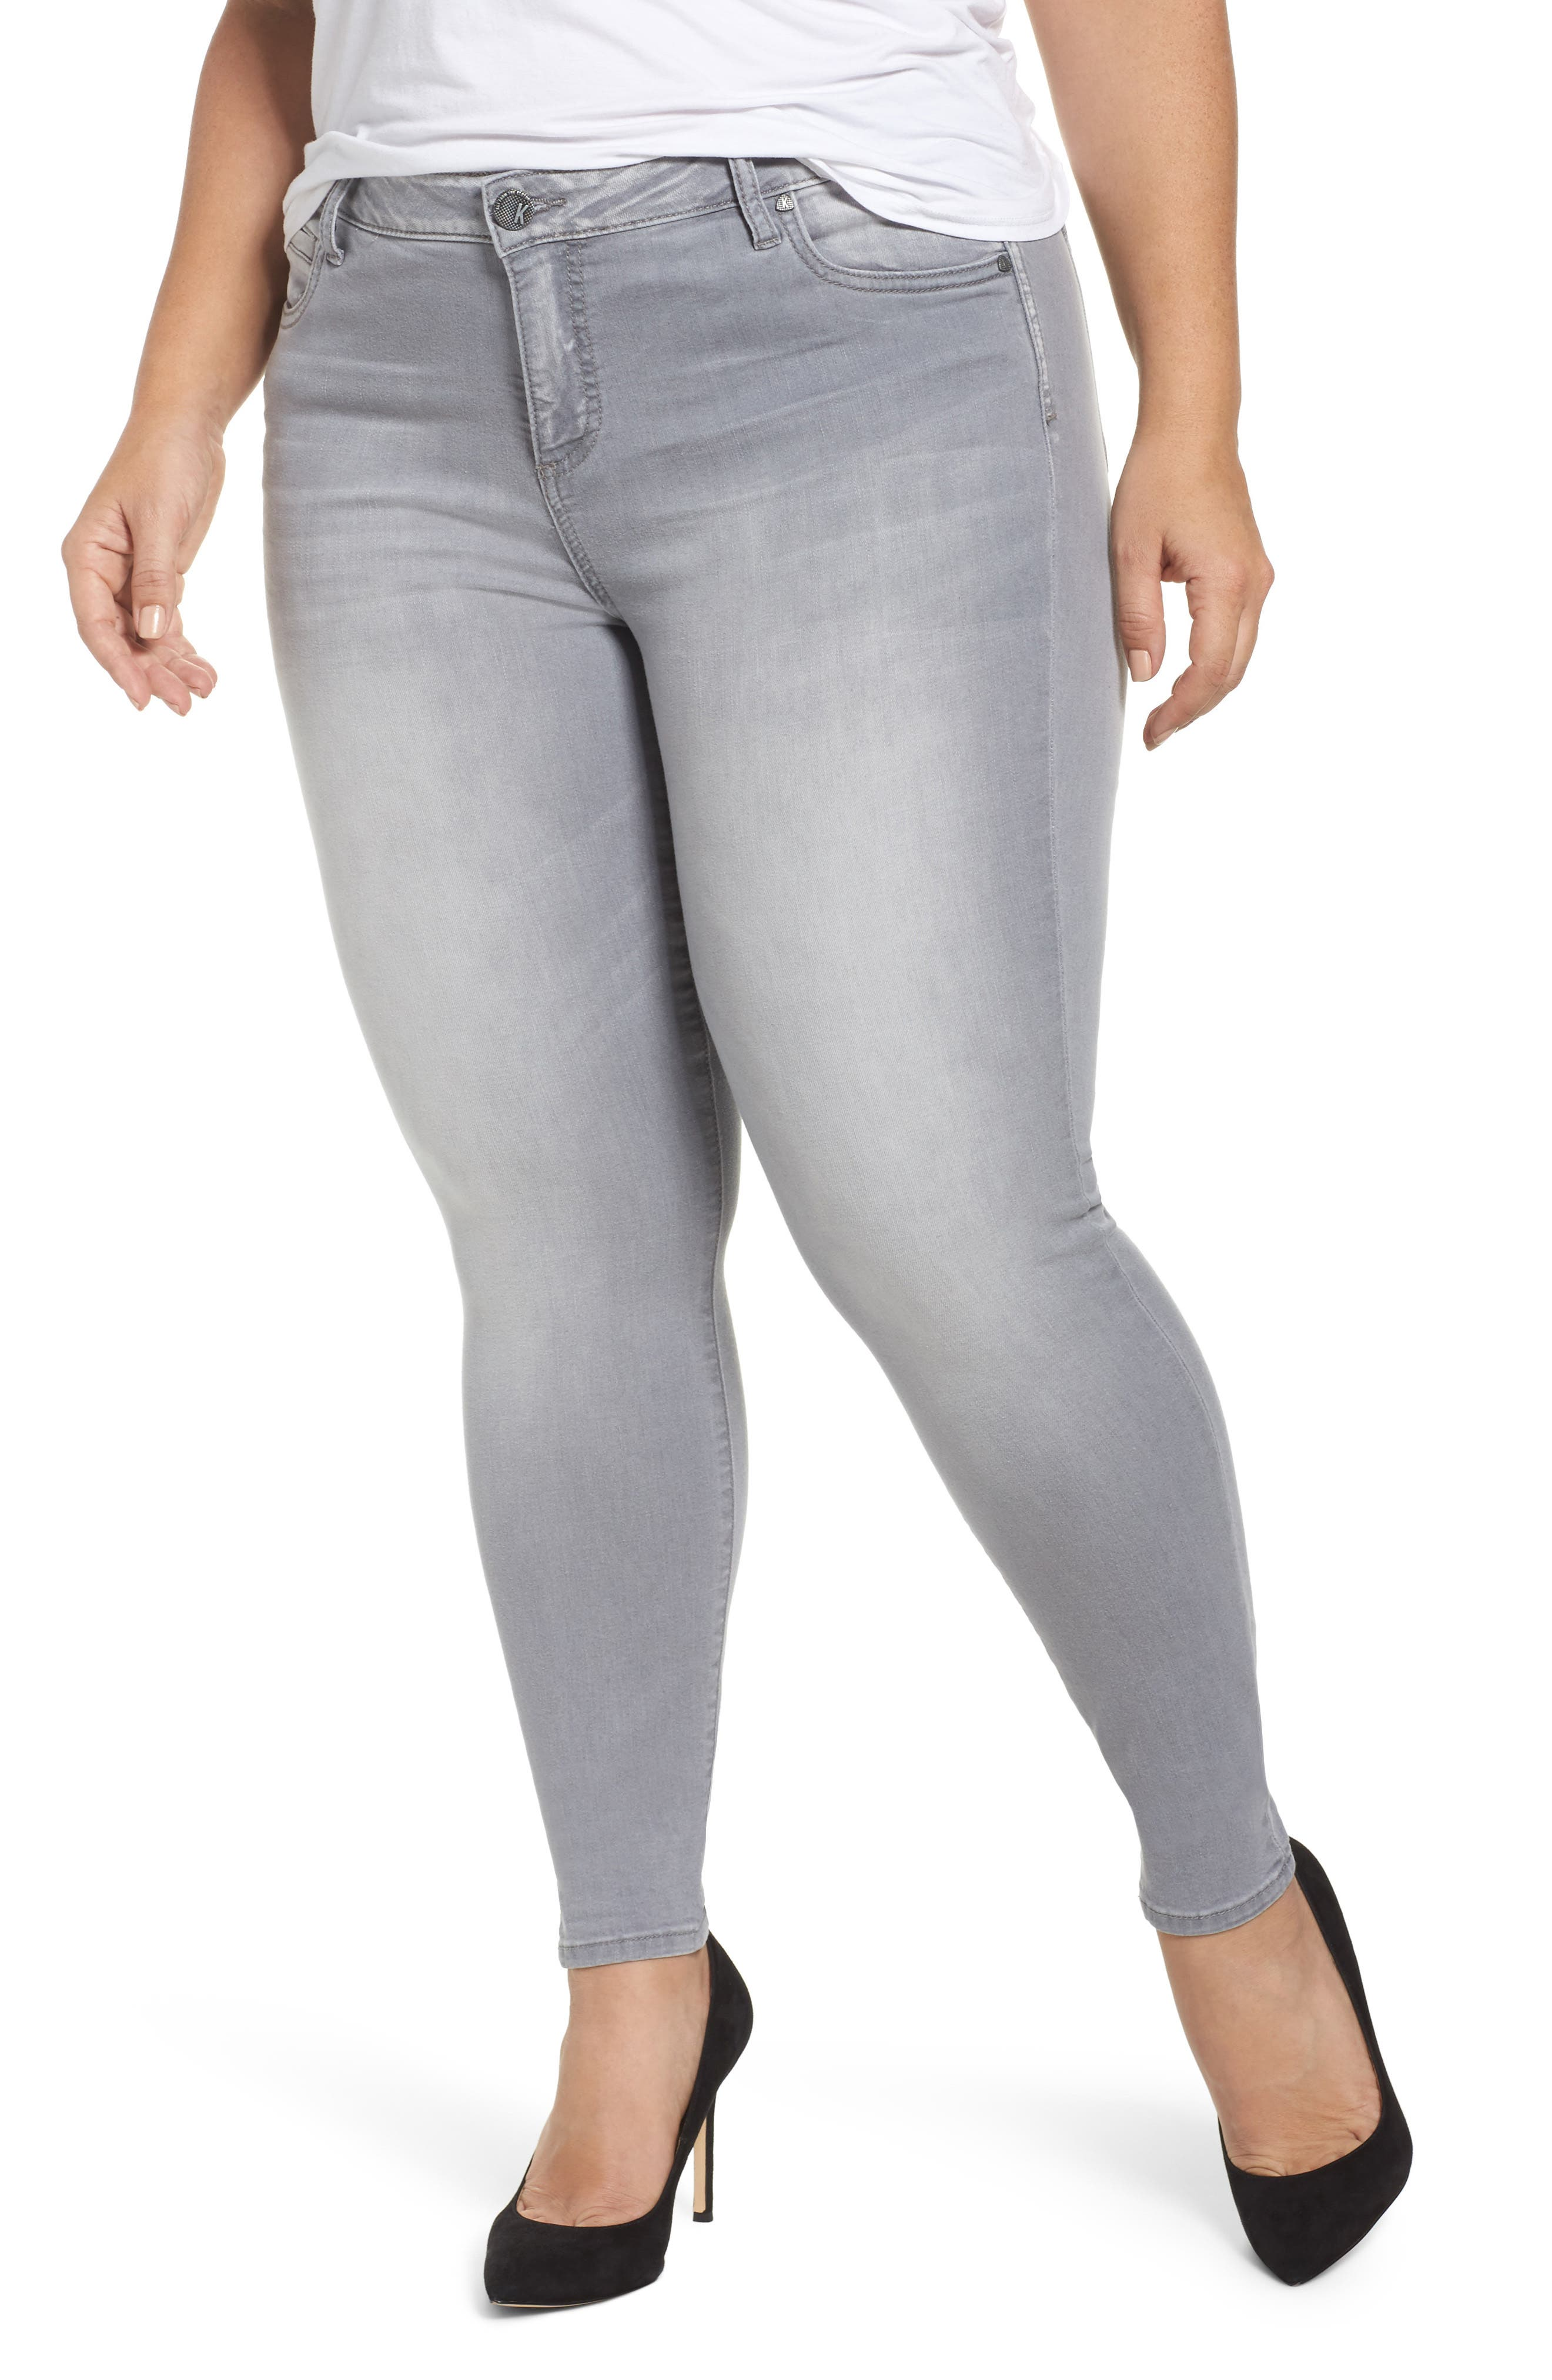 Main Image - Kut from the Kloth Mia Skinny Jeans (Prevailed) (Plus Size)